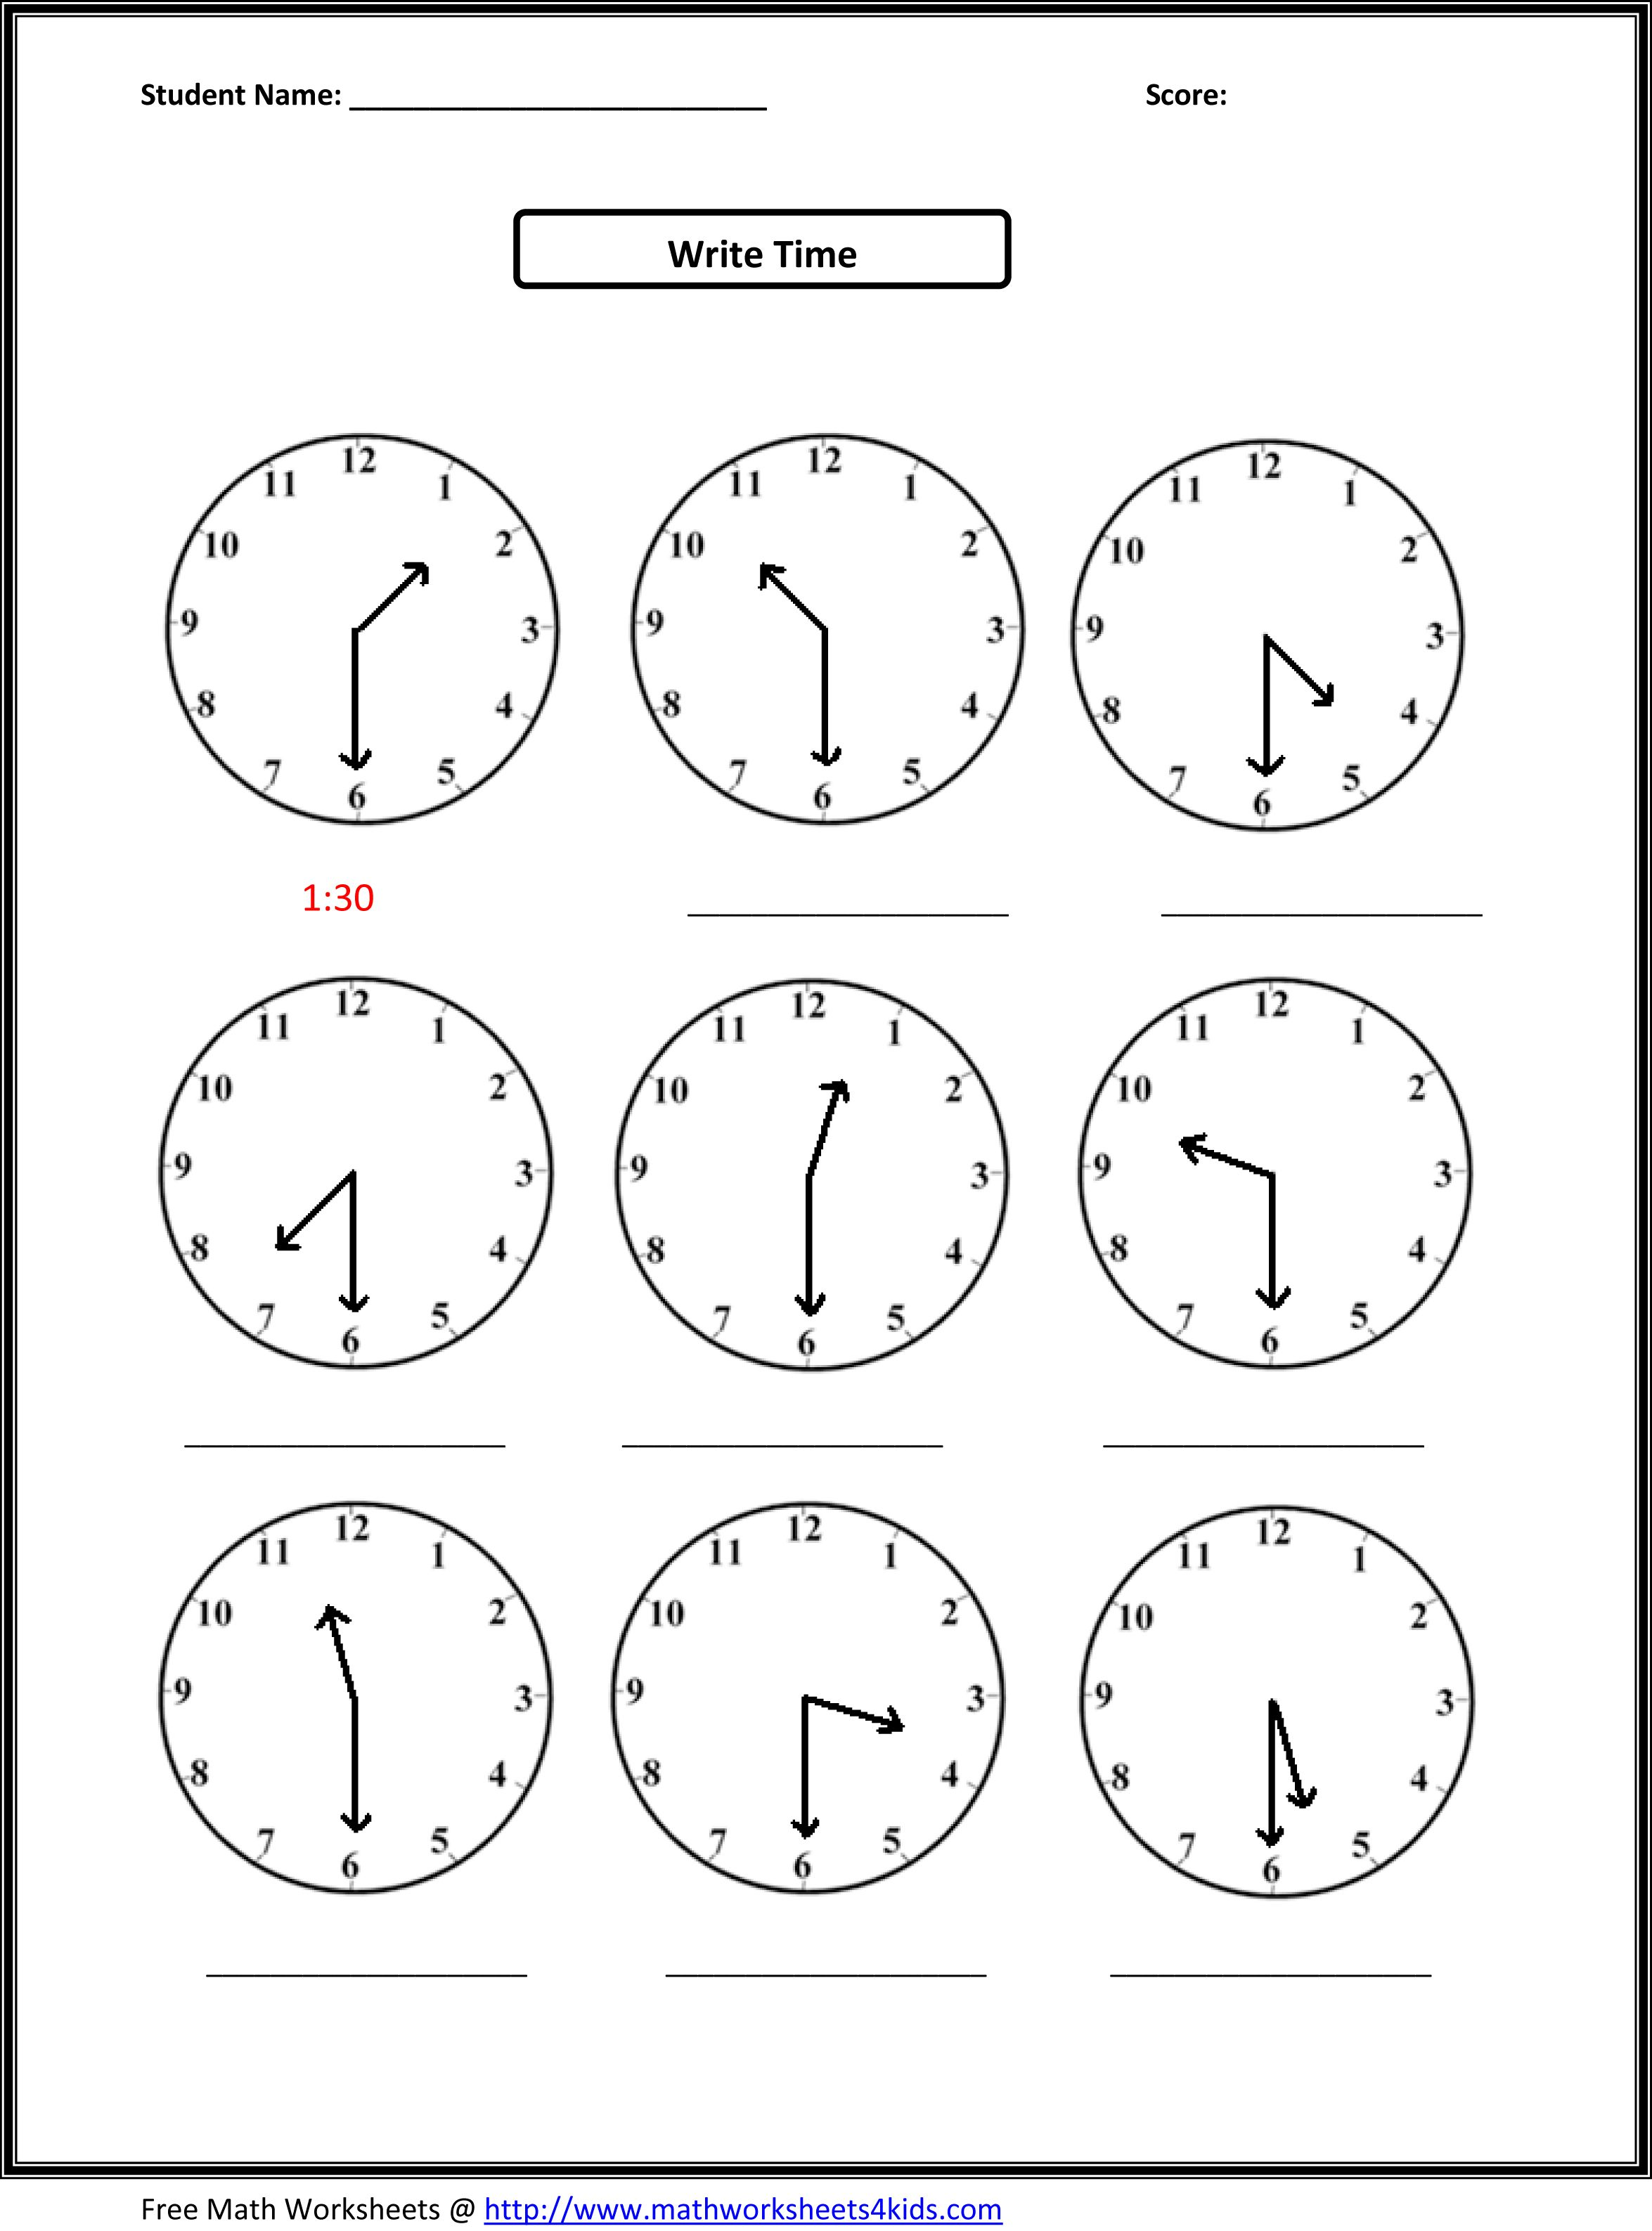 Weirdmailus  Terrific Worksheet On Time For Grade   Reocurent With Outstanding Free Printable Telling Time Worksheets Nd Grade  Reocurent With Alluring Division Printable Worksheets Also Mcgraw Hill Worksheet Answers In Addition Triangular Trade Worksheet And Comparing Plant And Animal Cells Worksheet As Well As Solve For X Worksheet Additionally Free Word Search Worksheets From Reocurentcom With Weirdmailus  Outstanding Worksheet On Time For Grade   Reocurent With Alluring Free Printable Telling Time Worksheets Nd Grade  Reocurent And Terrific Division Printable Worksheets Also Mcgraw Hill Worksheet Answers In Addition Triangular Trade Worksheet From Reocurentcom